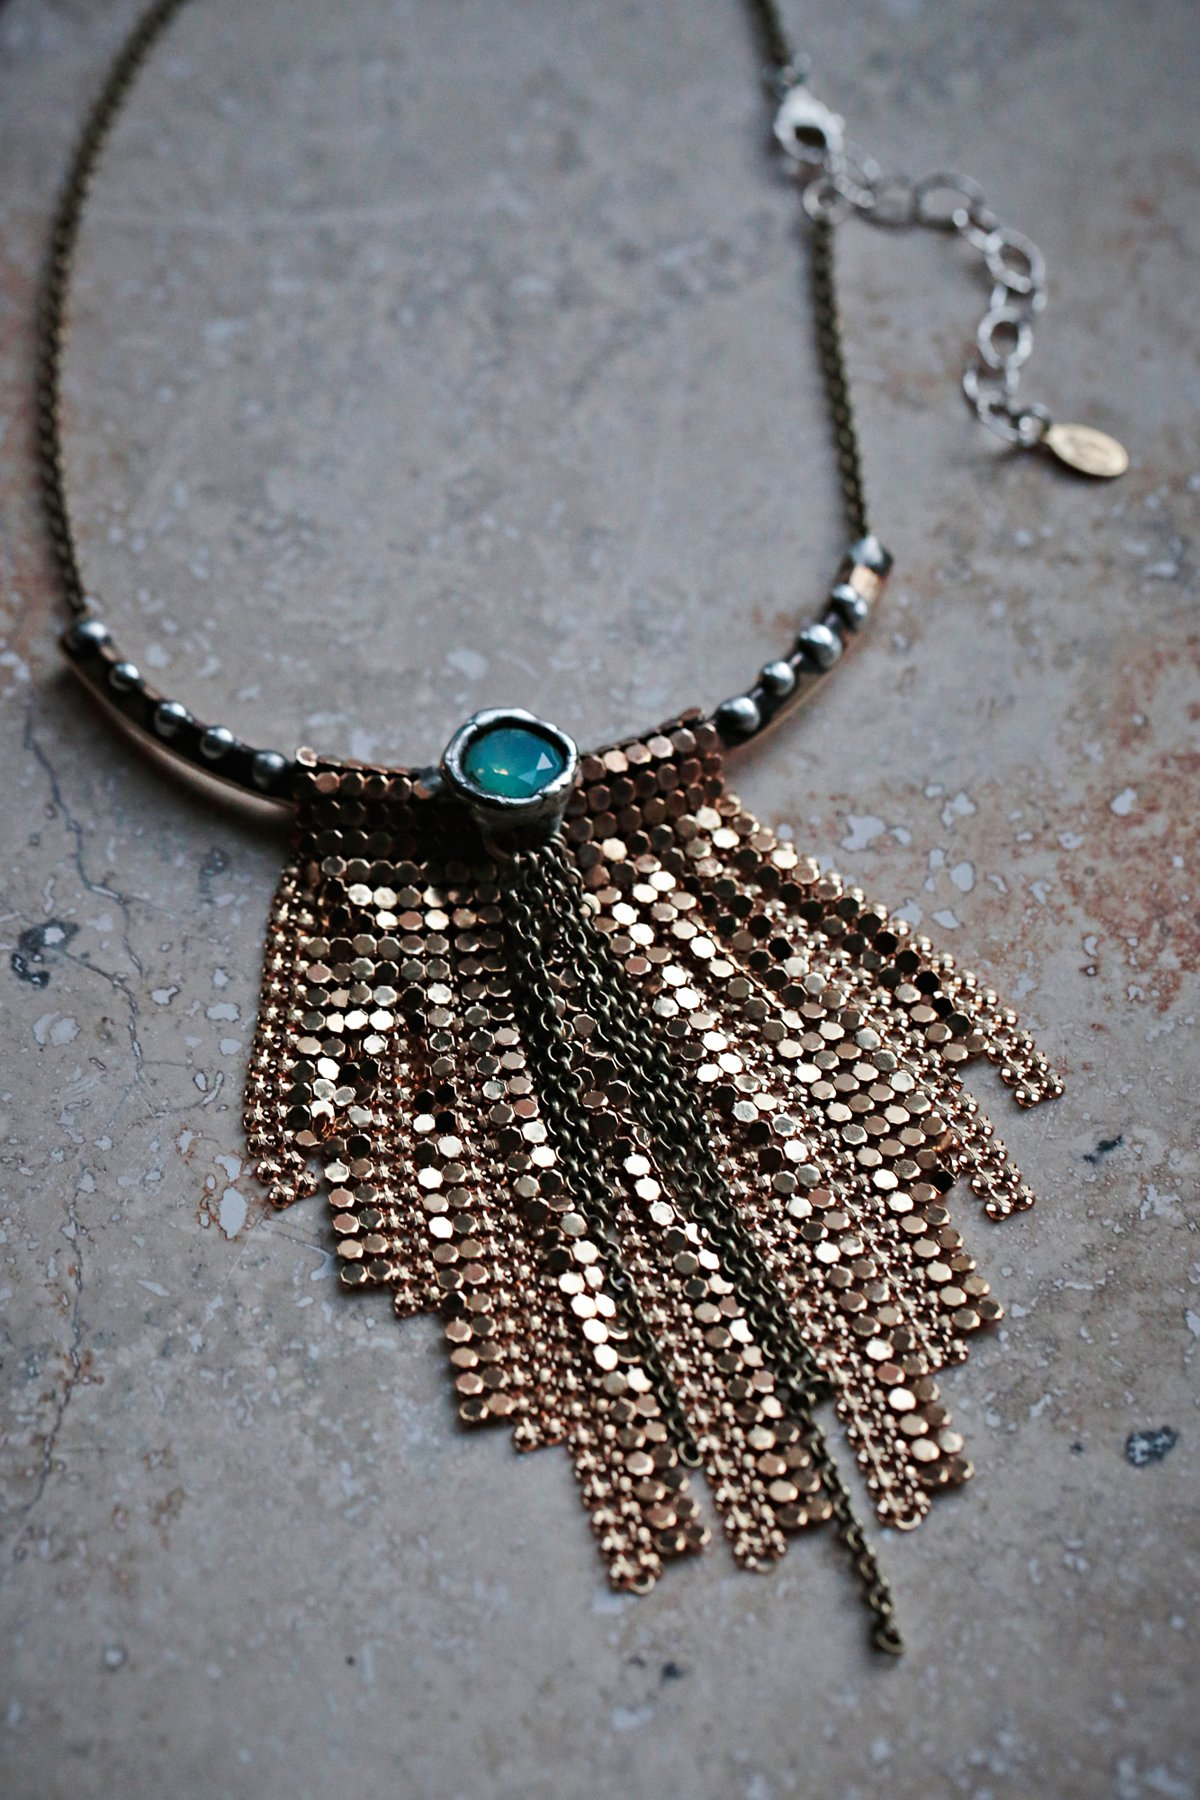 Native Rain Chainmail Necklace